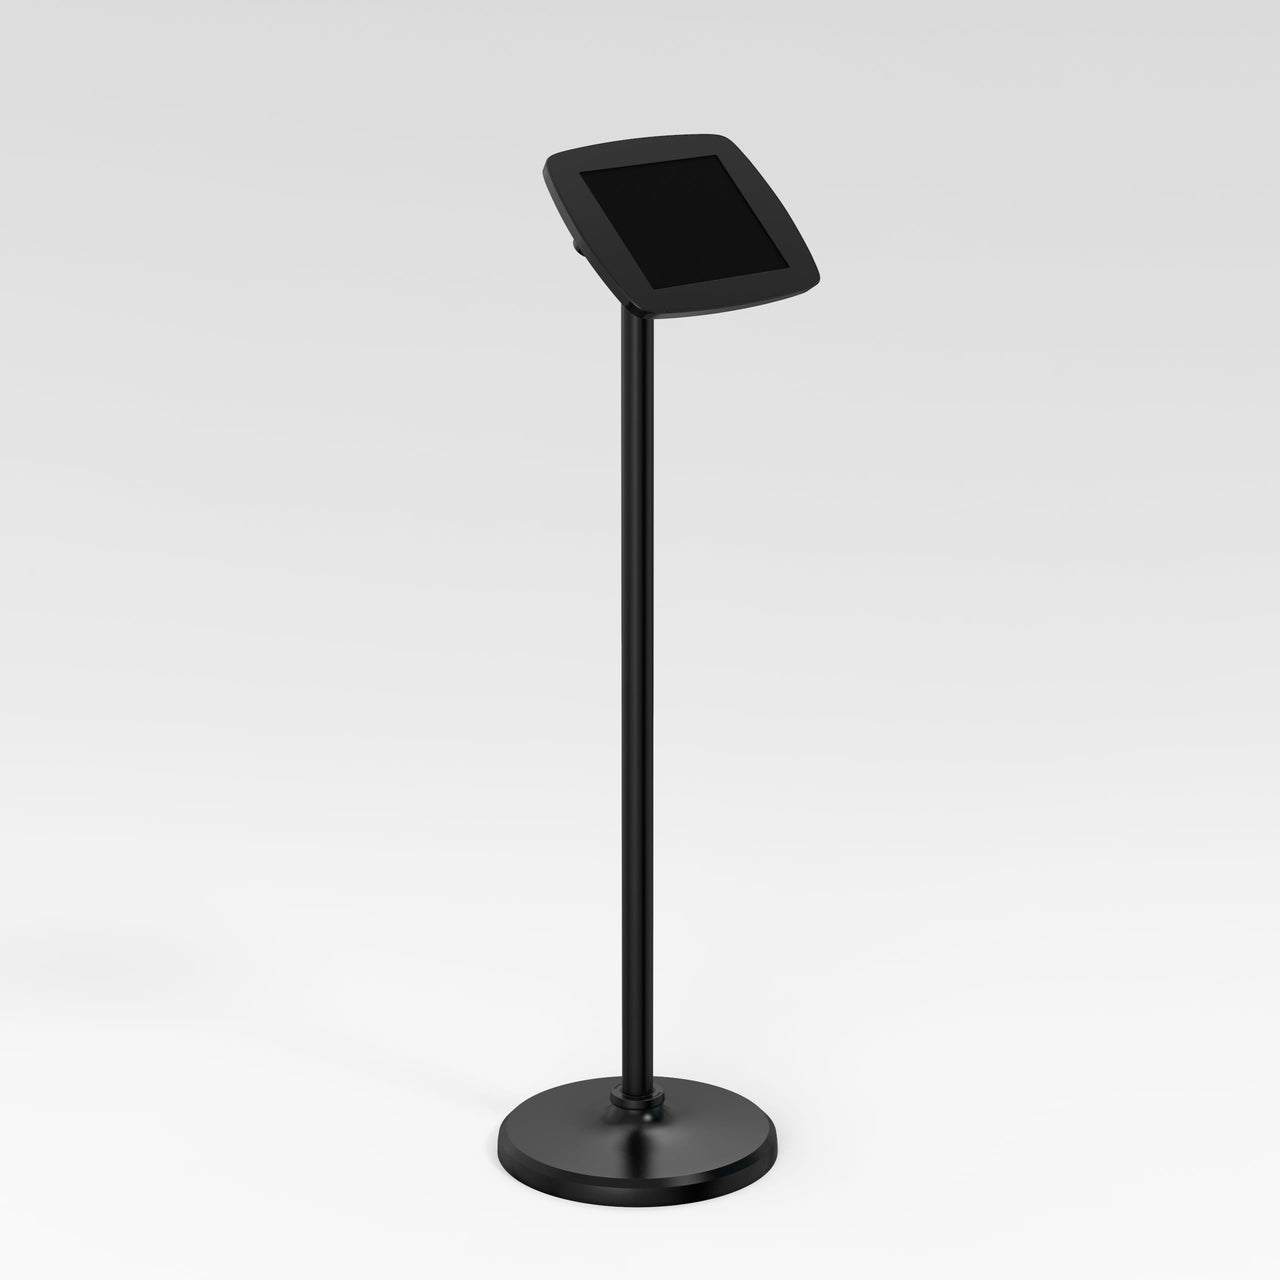 Bouncepad Floorstanding - A secure tablet & iPad floor stand in black.